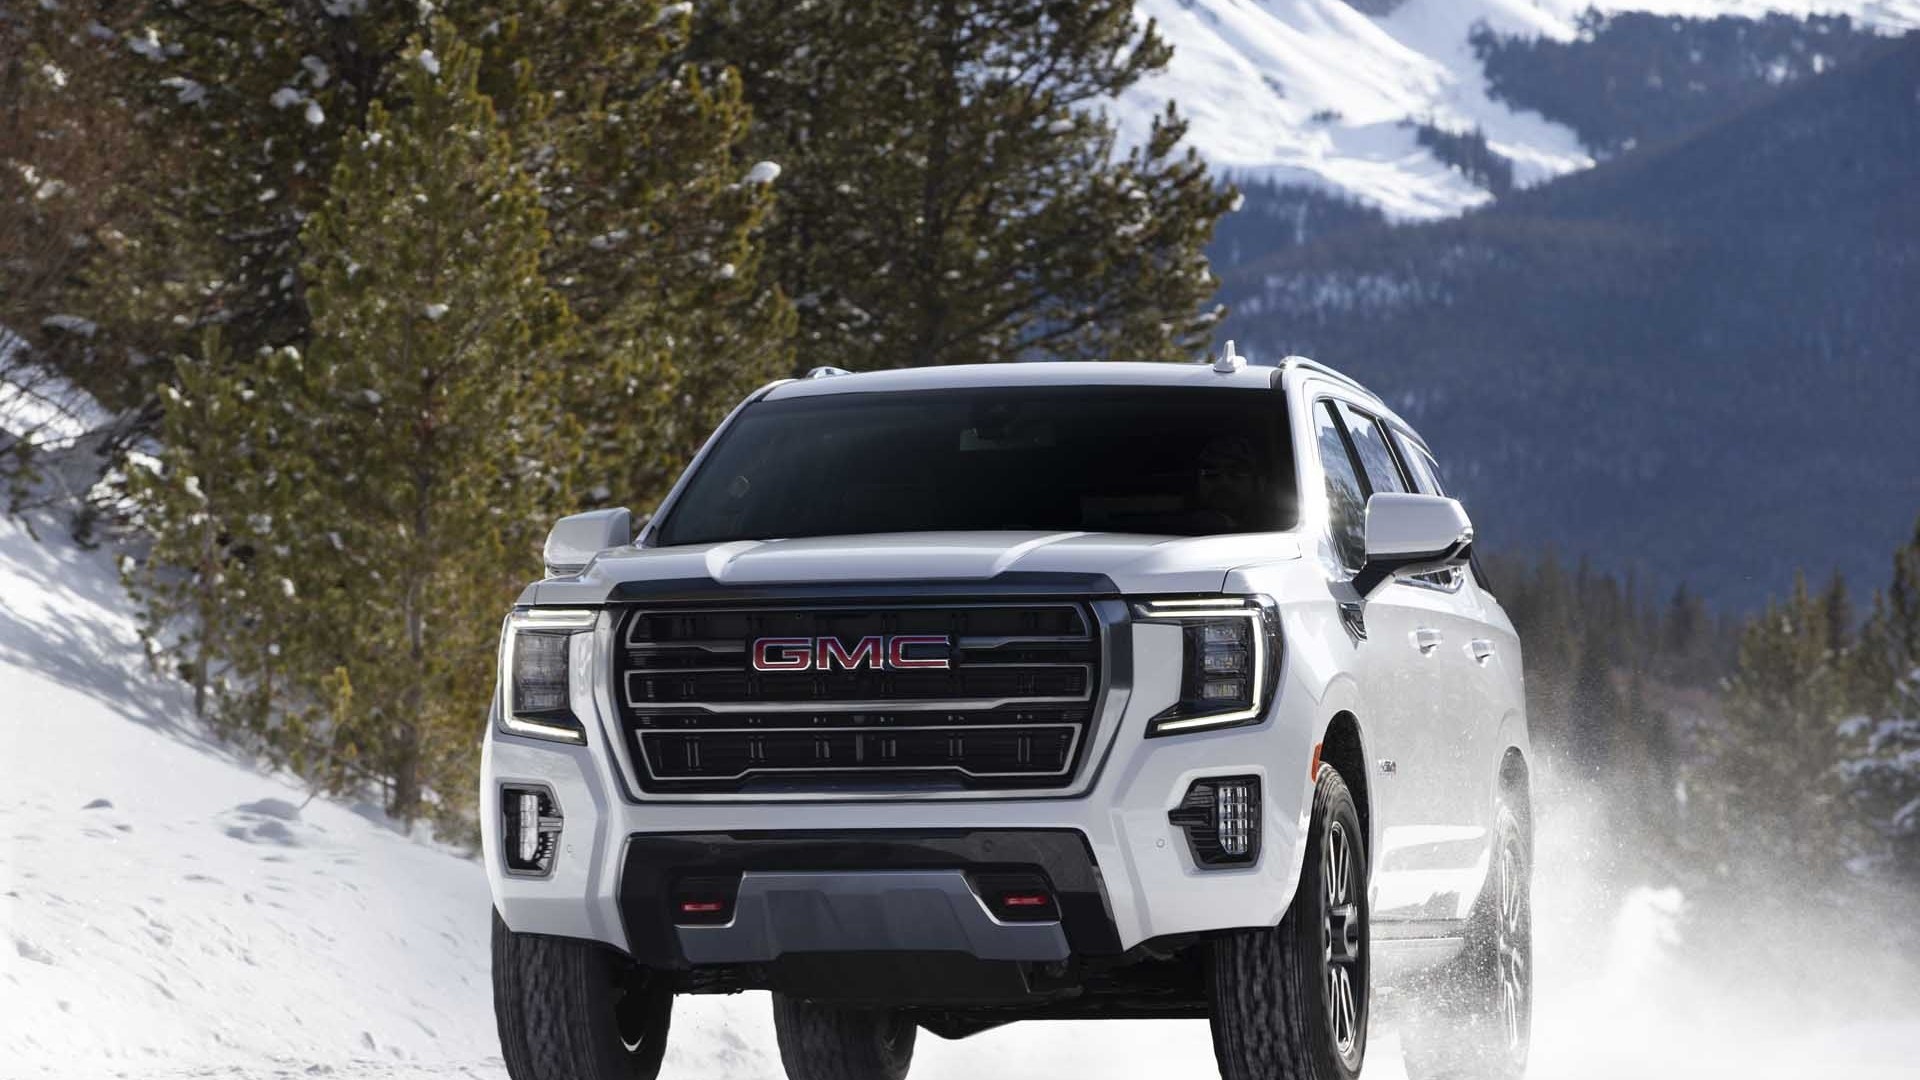 2021 Gmc Yukon Suv Revealed: Richer Denali, Tougher At4, And 2022 Chevrolet Tahoe Price, Interior, Accessories